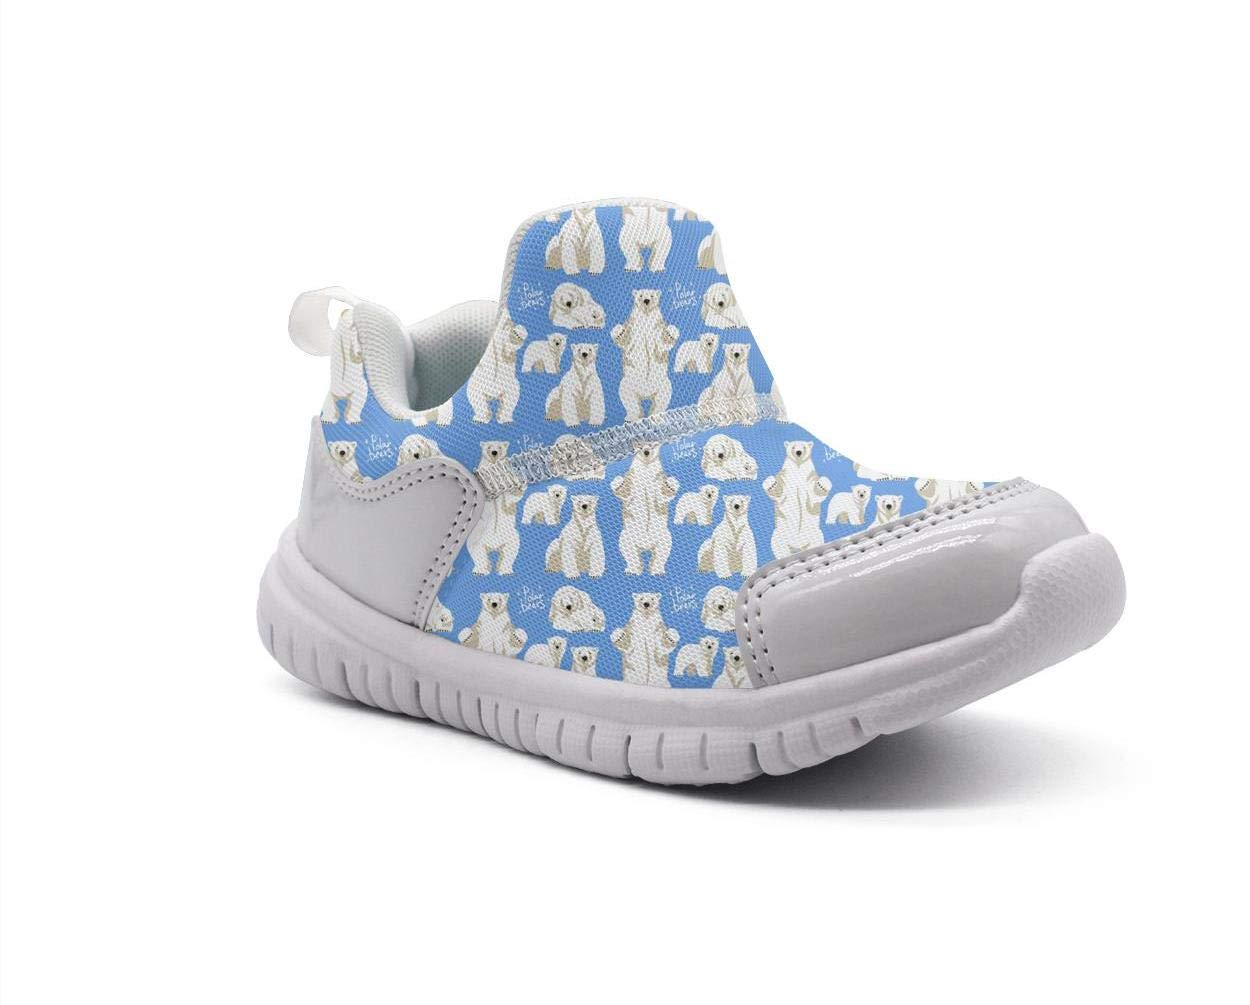 ONEYUAN Children Large Polar Bear Blue Kid Casual Lightweight Sport Shoes Sneakers Walking Athletic Shoes